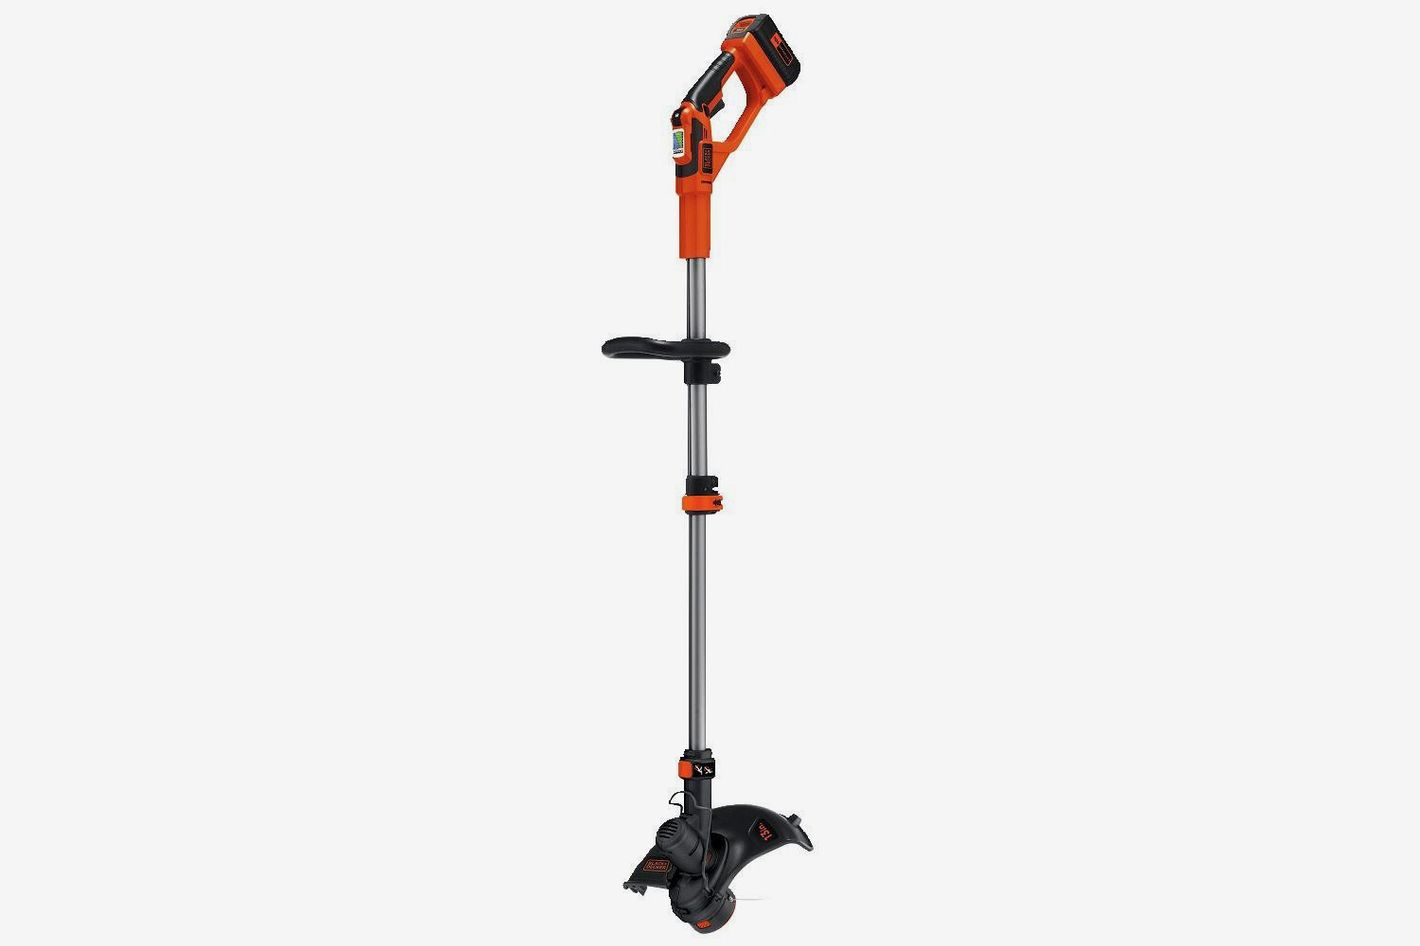 Black + Decker LST136W 40V MAX Lithium String Trimmer